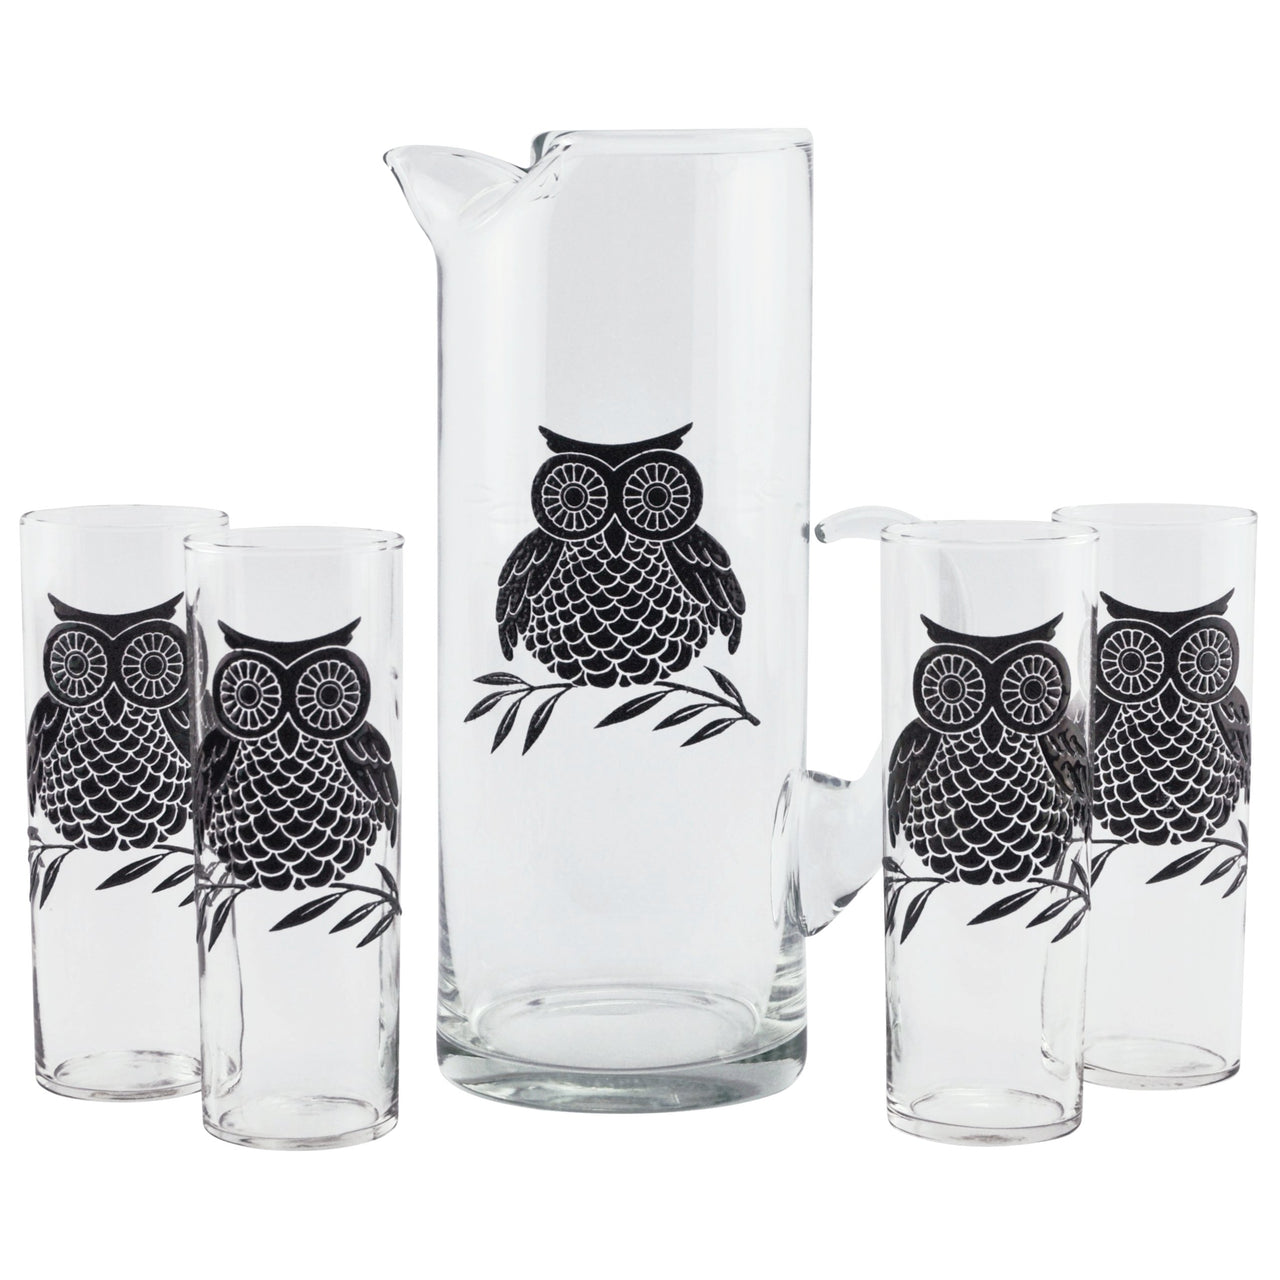 Black Owl Pitcher & Glasses Set | The Hour Shop Vintage